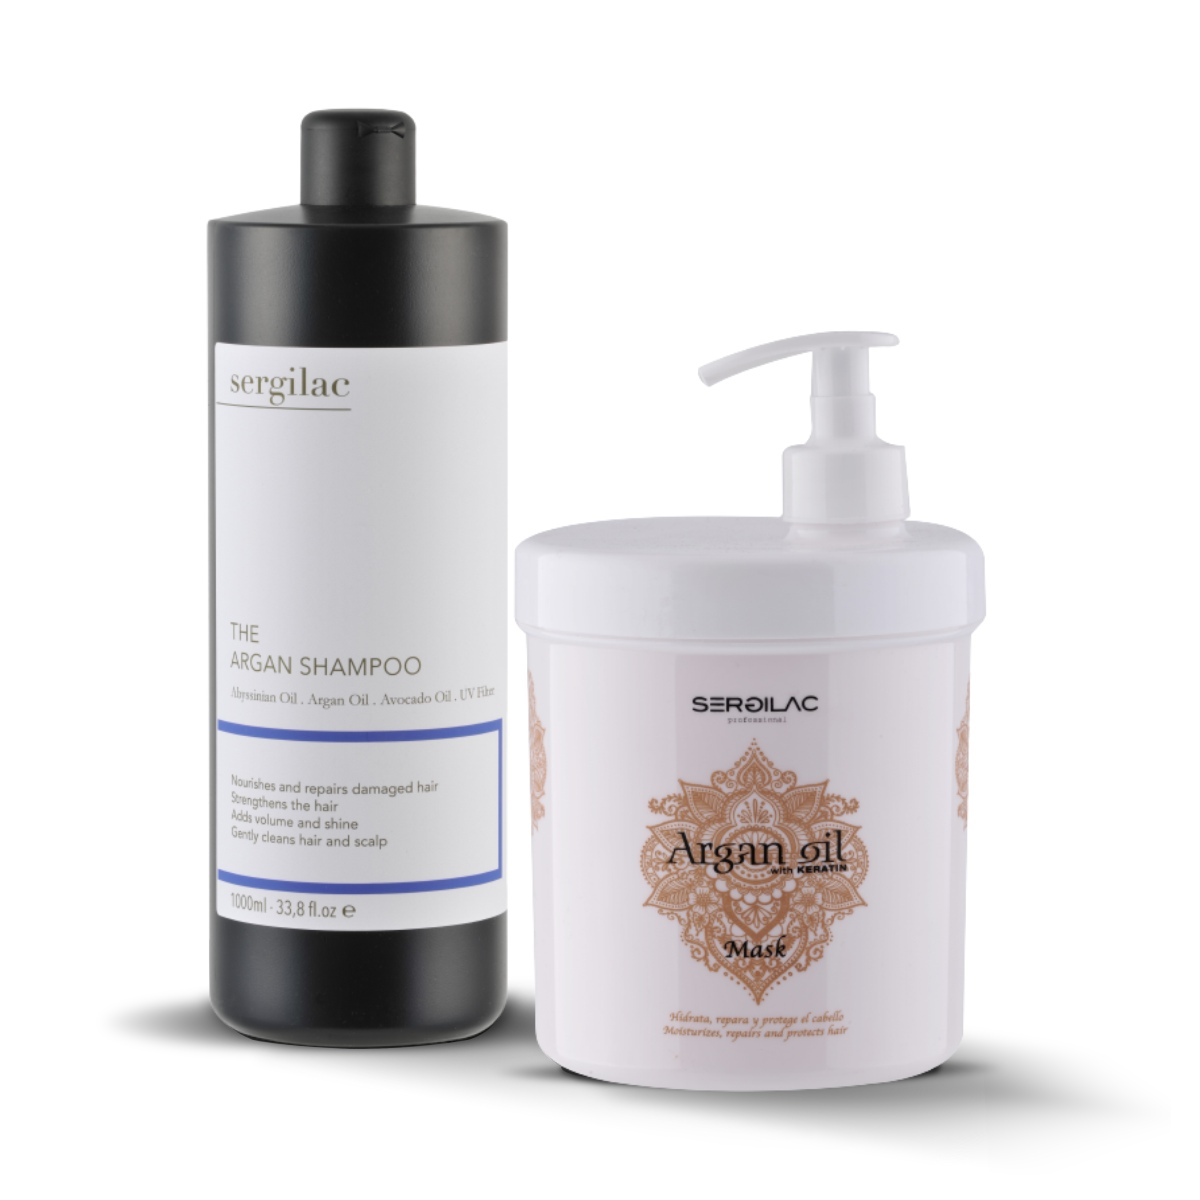 Lote Sergilac - The Argan Shampoo + Mask